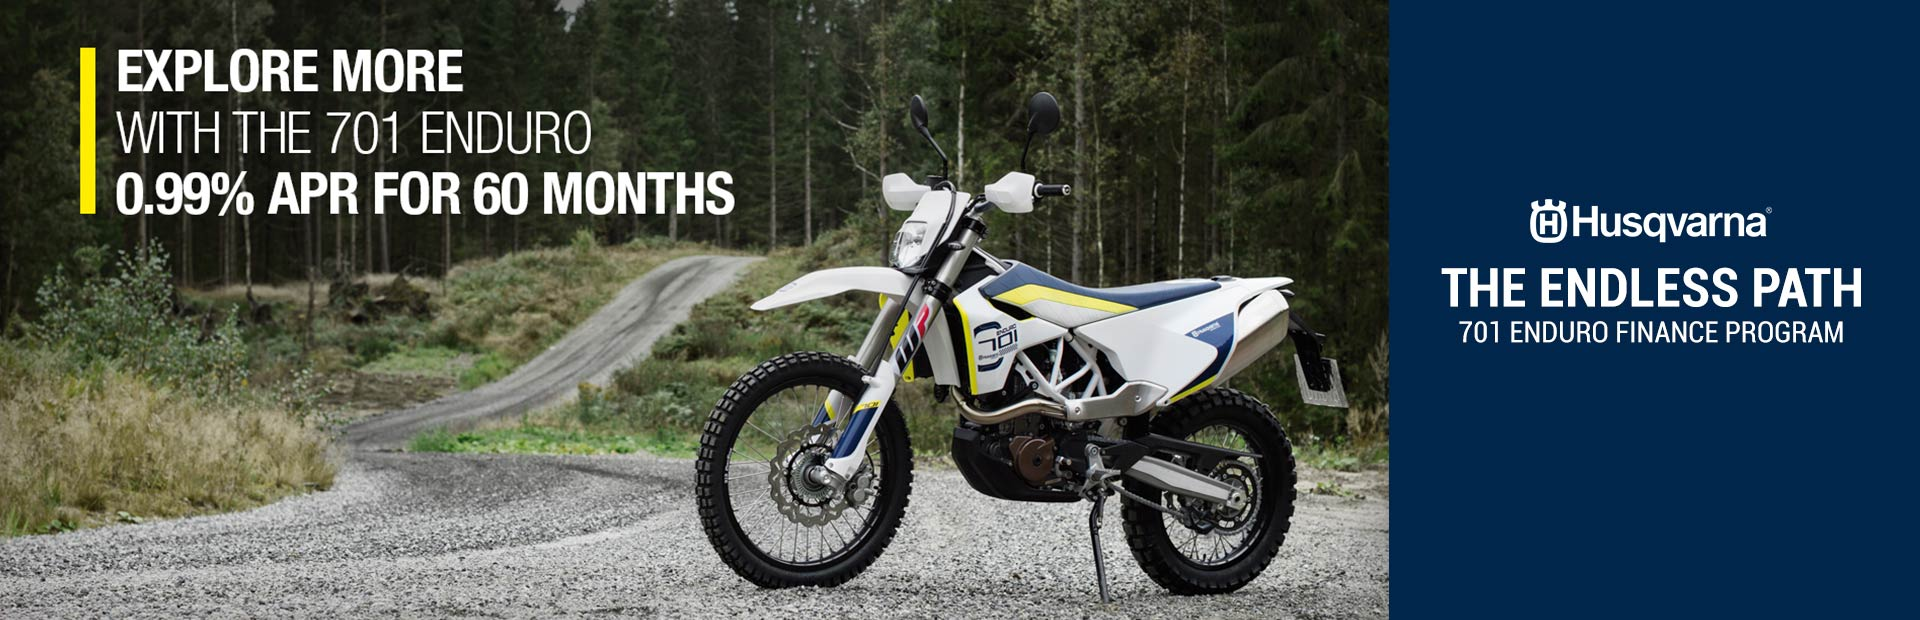 Husqvarna Motorcycles: The Endless Path - 701 Enduro Finance Program